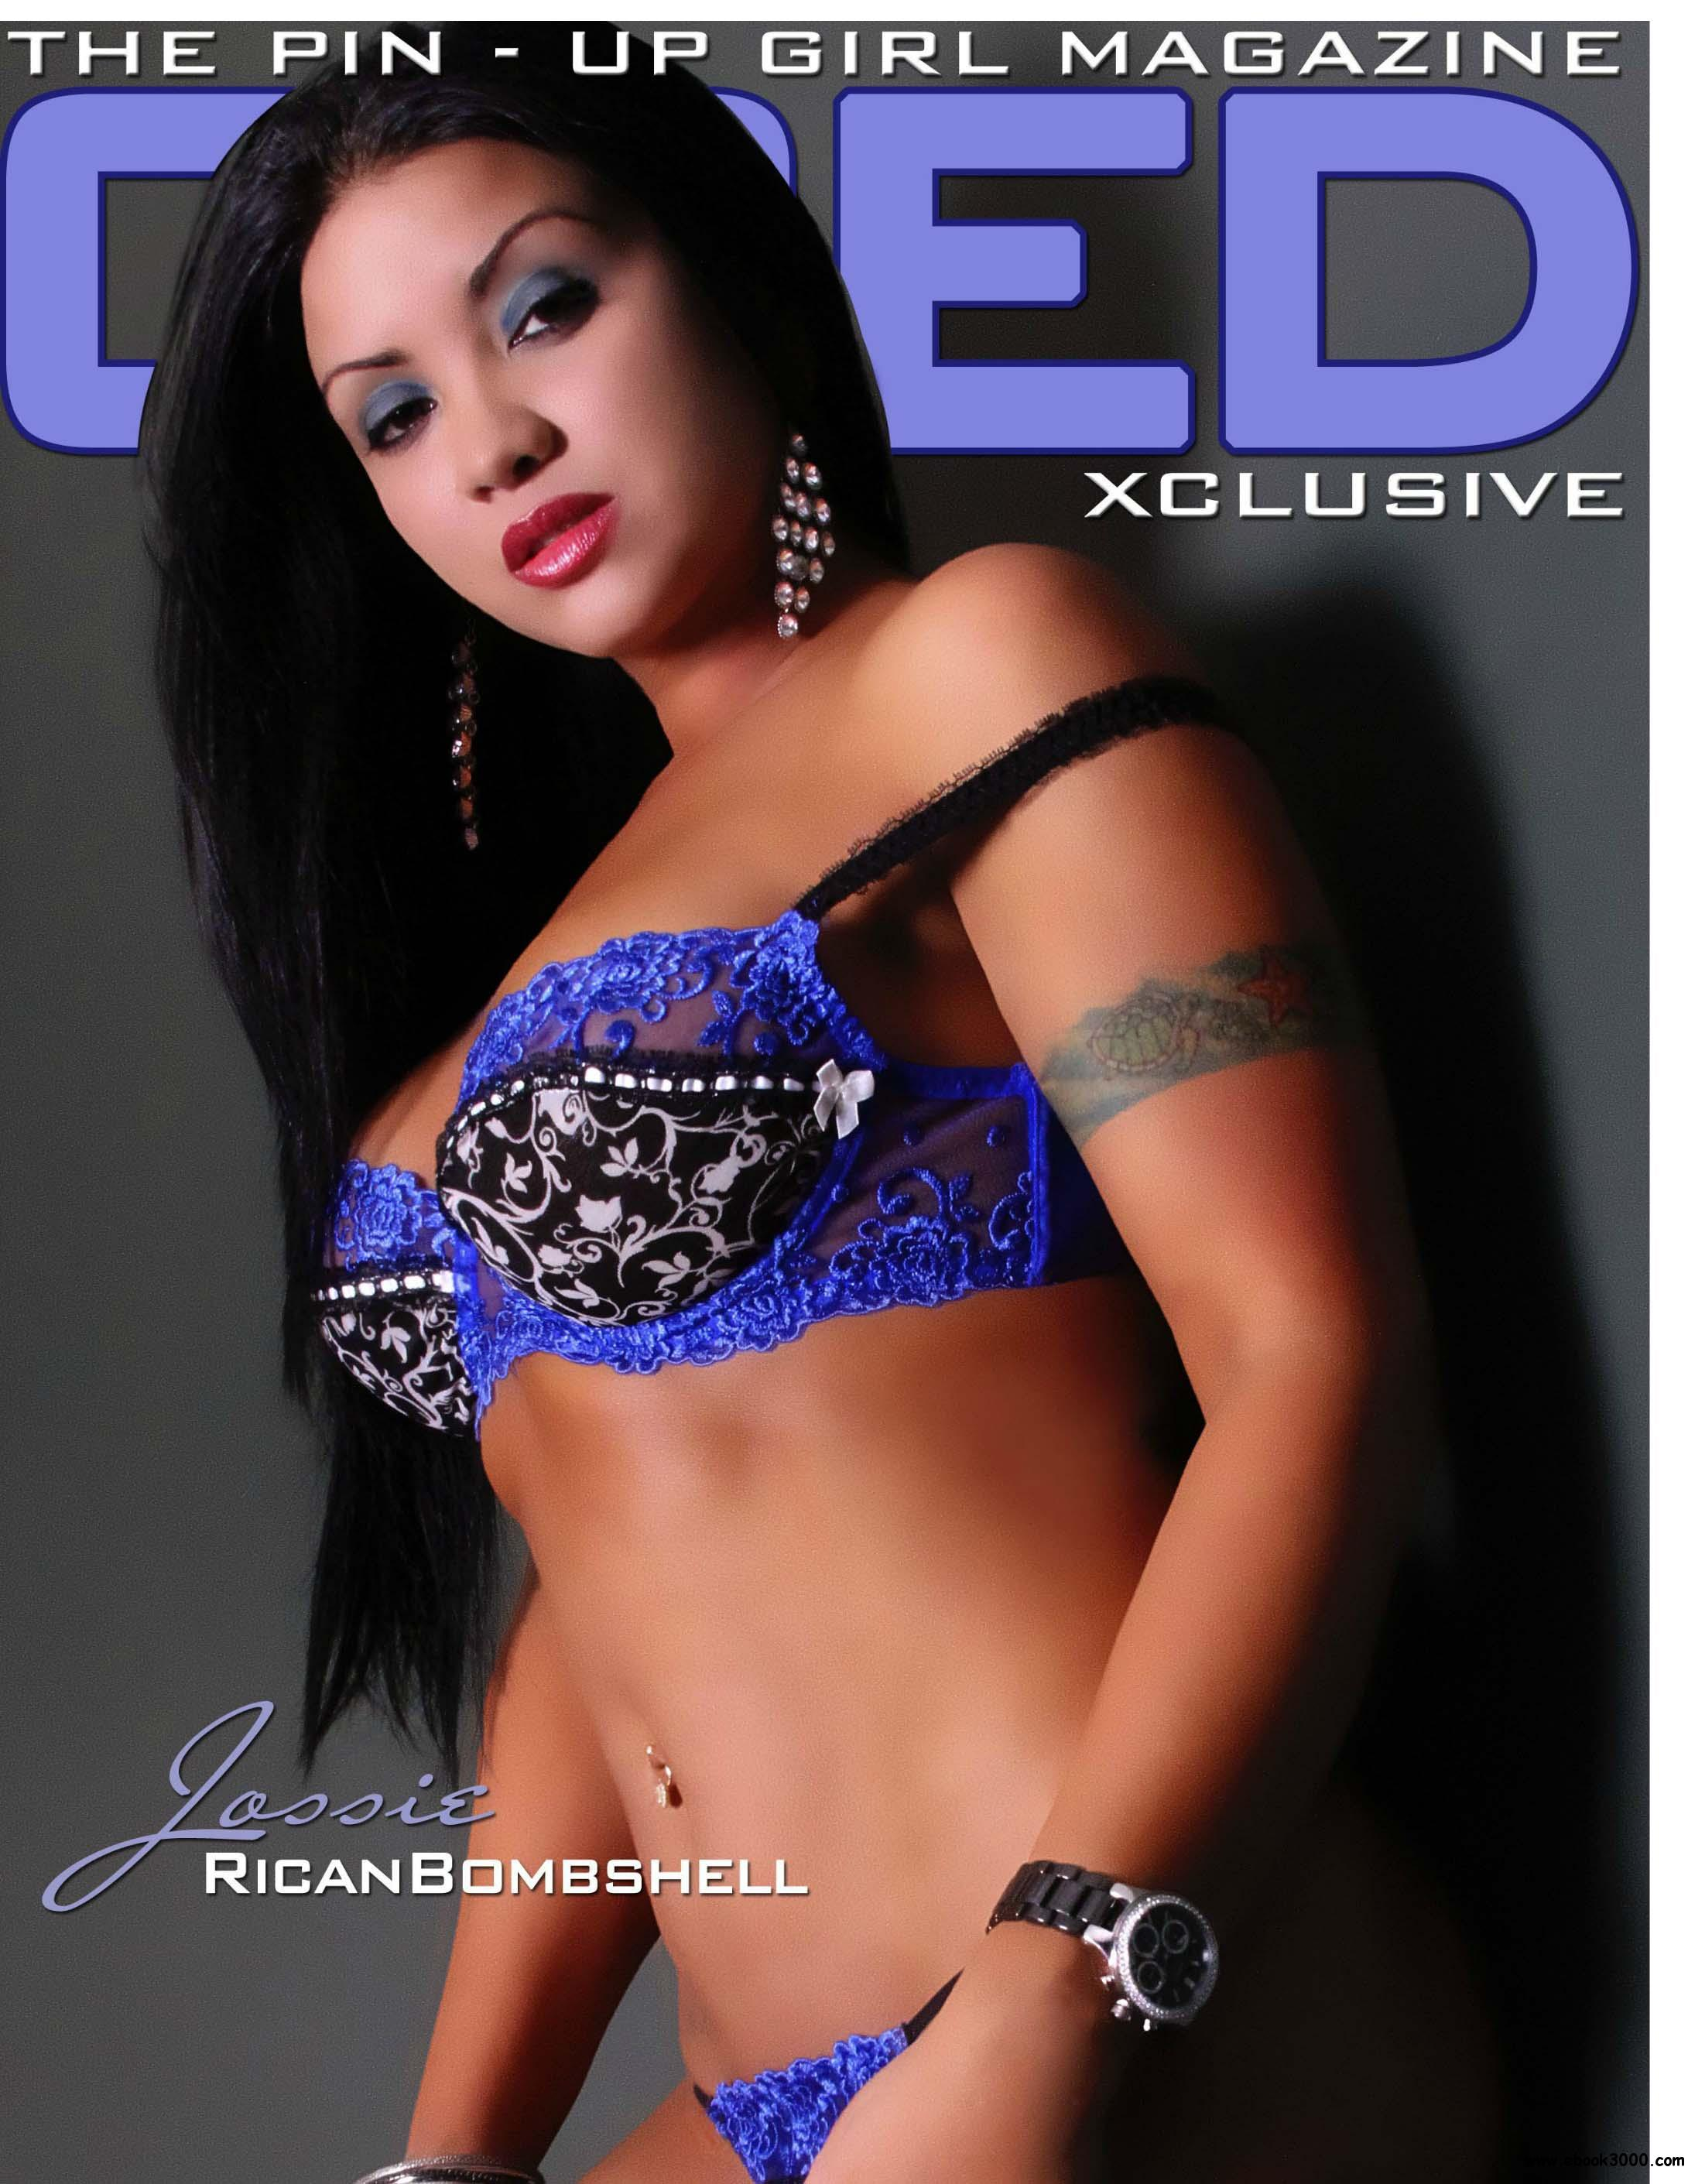 CRED XCLUSIVE - THE PIN UP GIRL MAGAZINE - Jossie Rican Bombshell free download